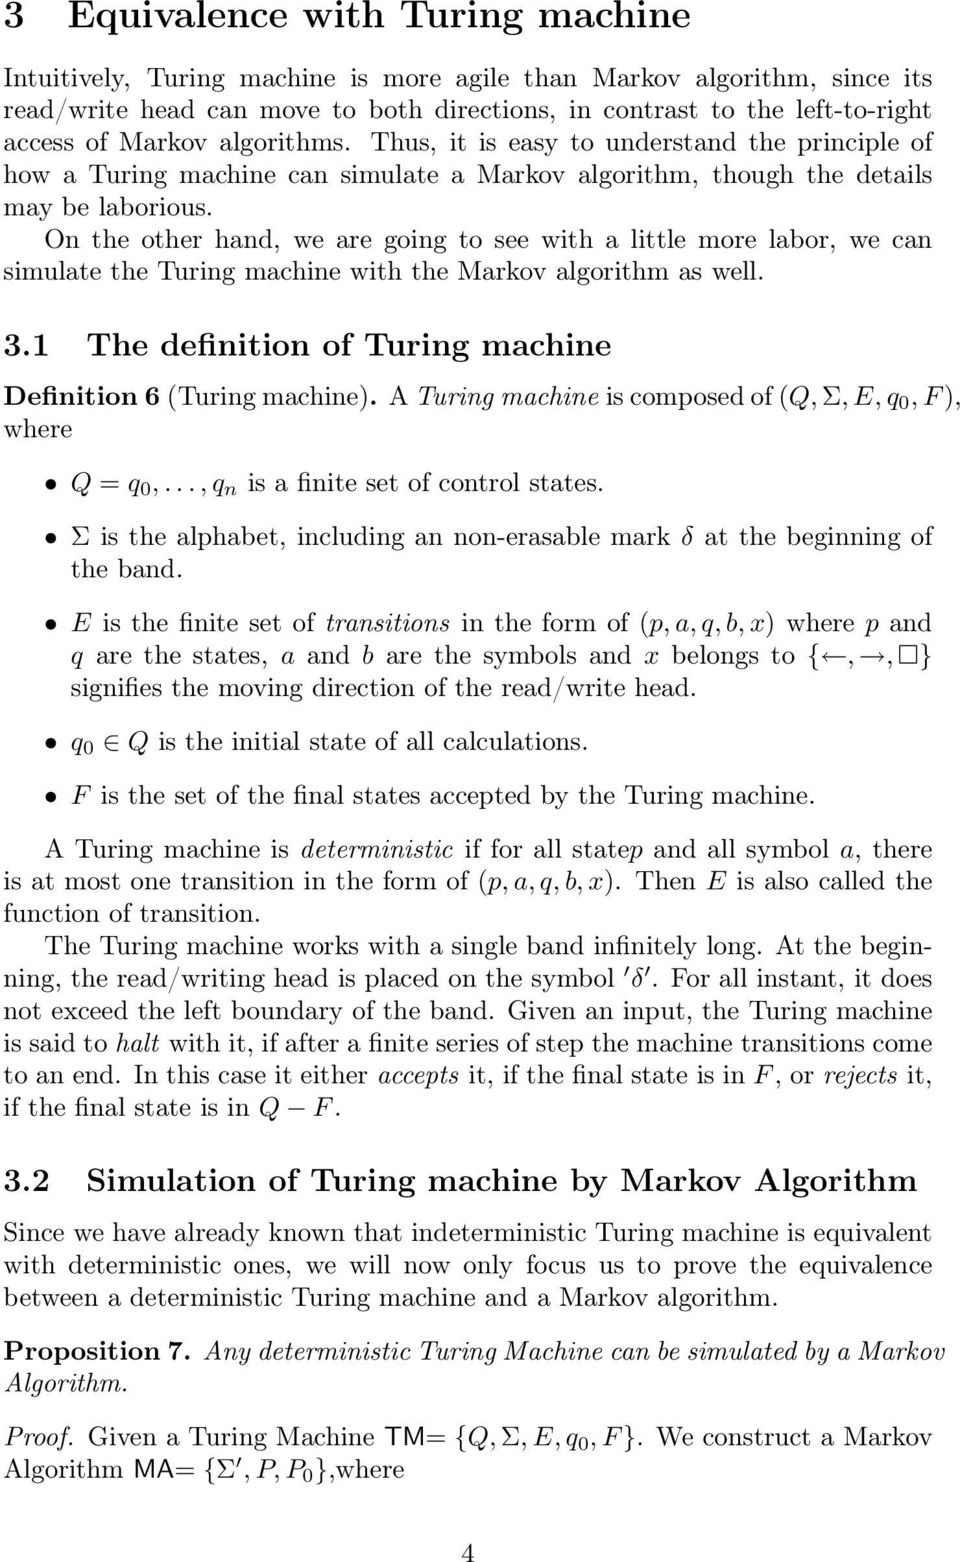 On the other hand, we are going to see with a little more labor, we can simulate the Turing machine with the Markov algorithm as well. 3.